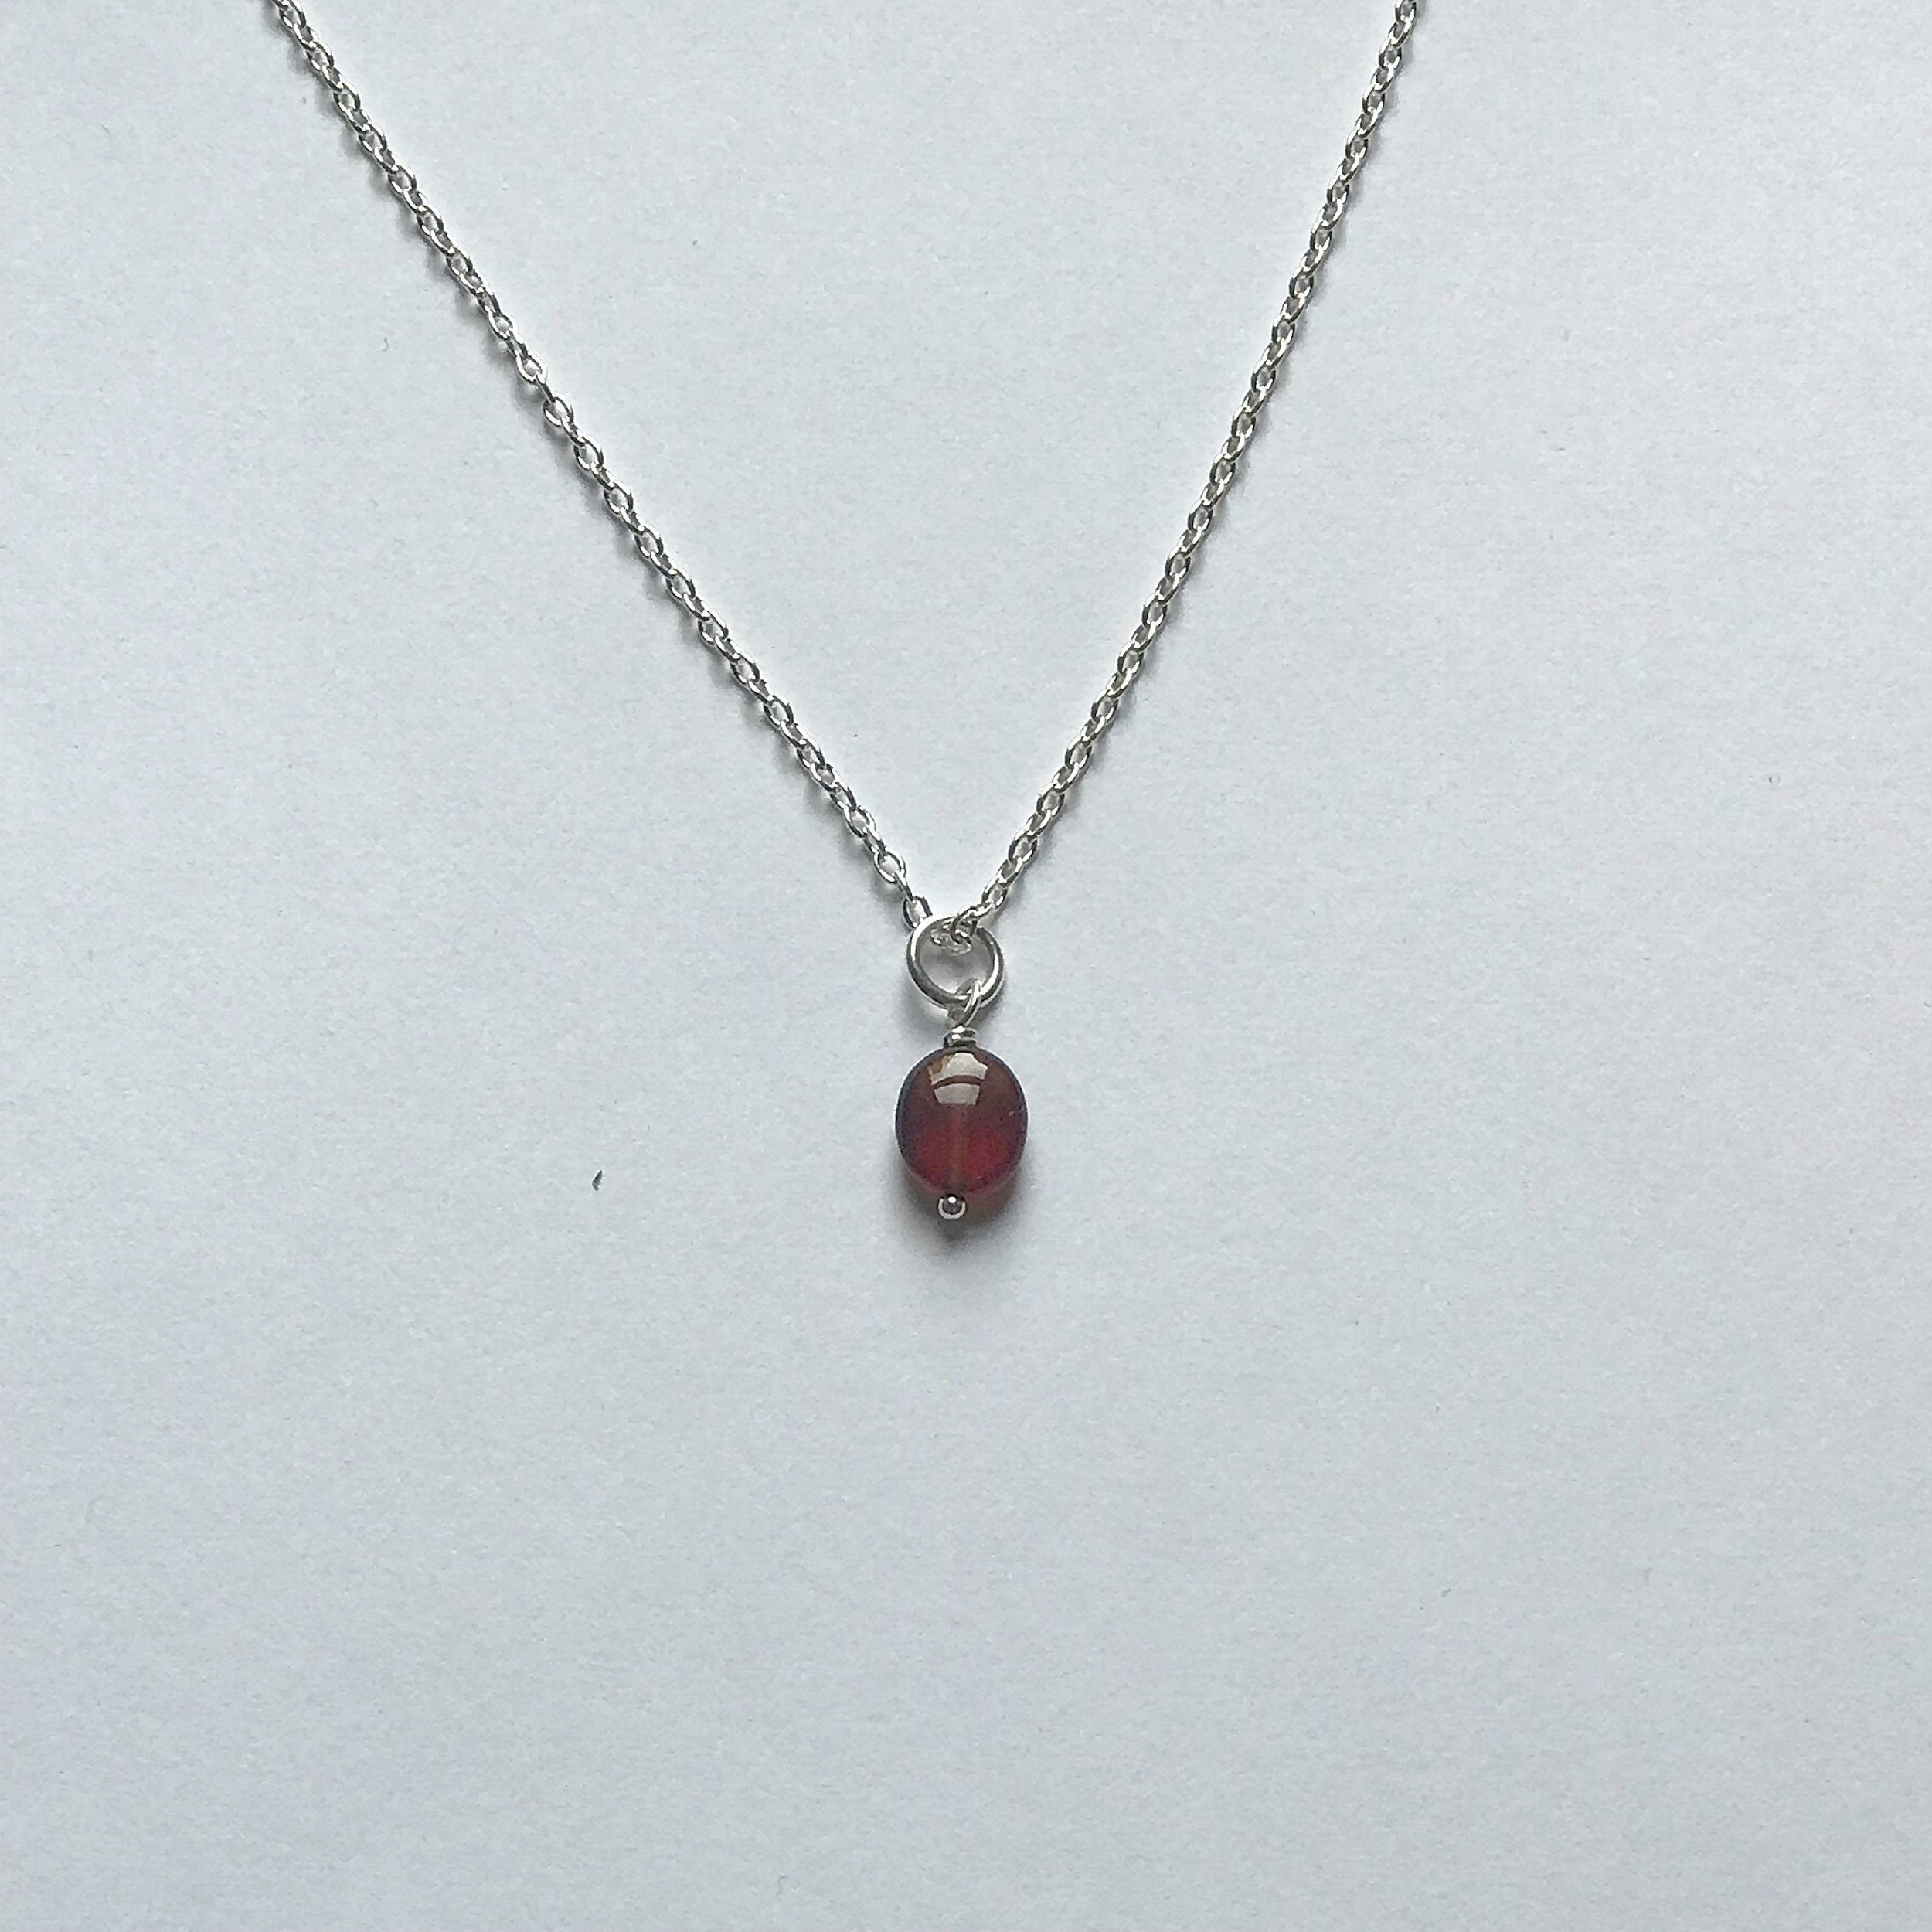 $175 Sterling Silver Garnet Necklace 16""